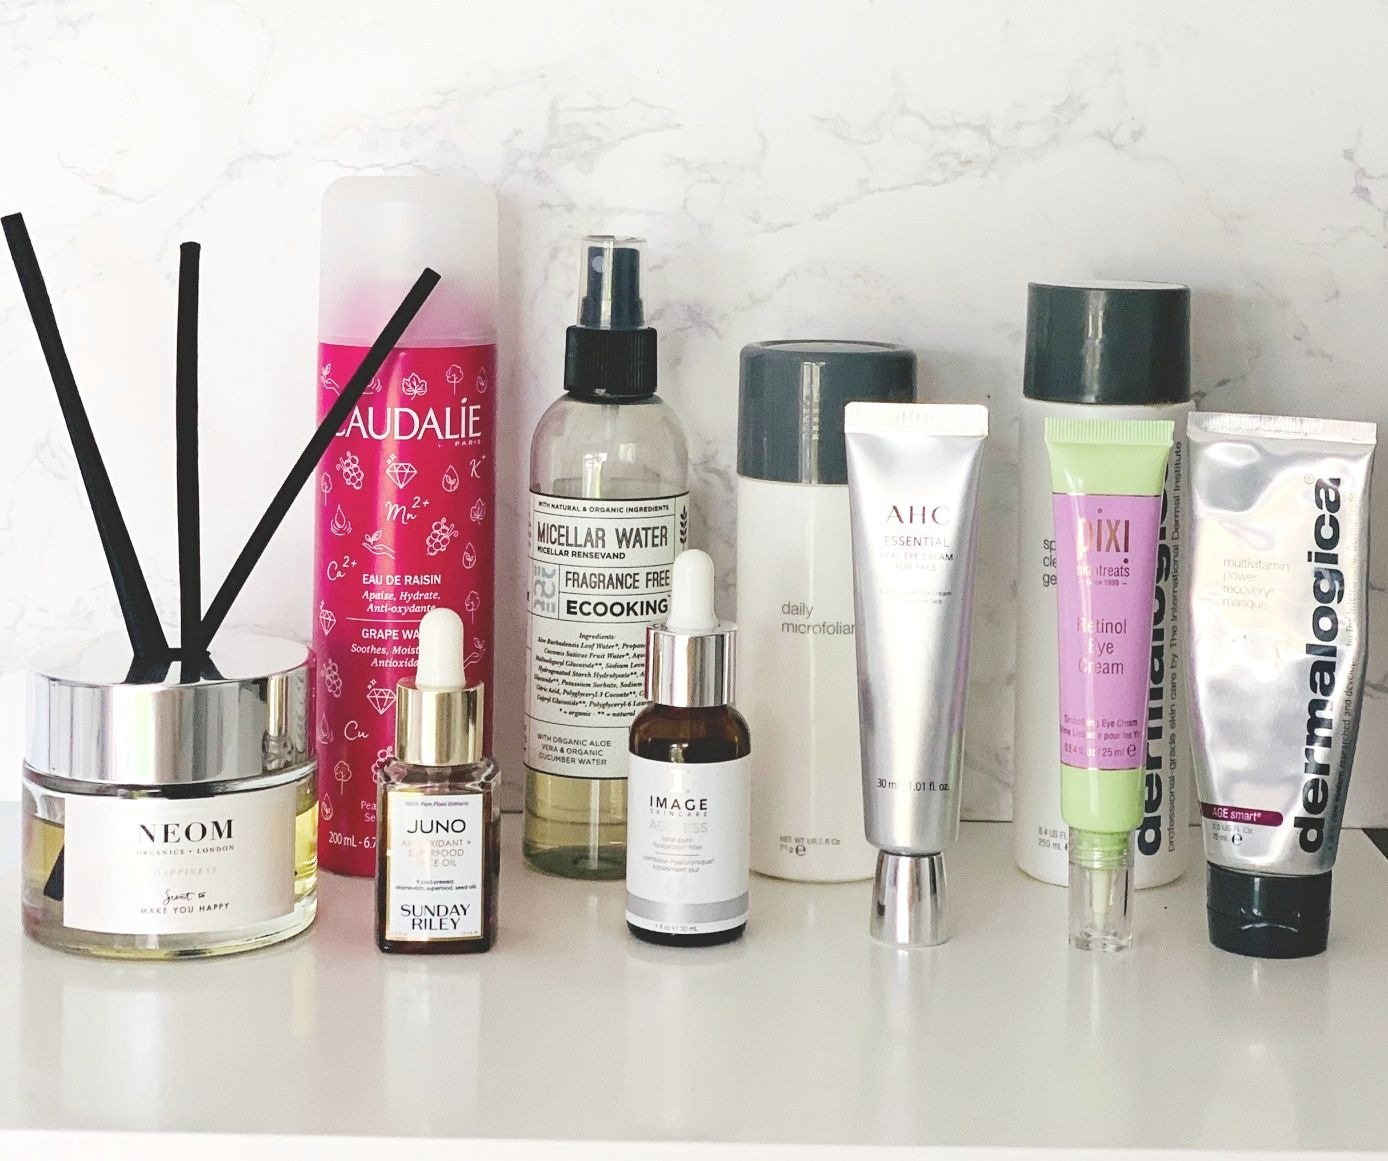 Weekly DIY Facial, Dermalogica Cleansing Gel, Dermalogica Daily Microfoliant, Dermalogica Power Recovery Masque, Caudalie Grape Water, Image Total Pure Hyaluronic Acid, AHC Hydrating Essential Real Eye Cream For Face, Sunday Riley CEO Glow Oil, Pixi Retinol Eye Cream